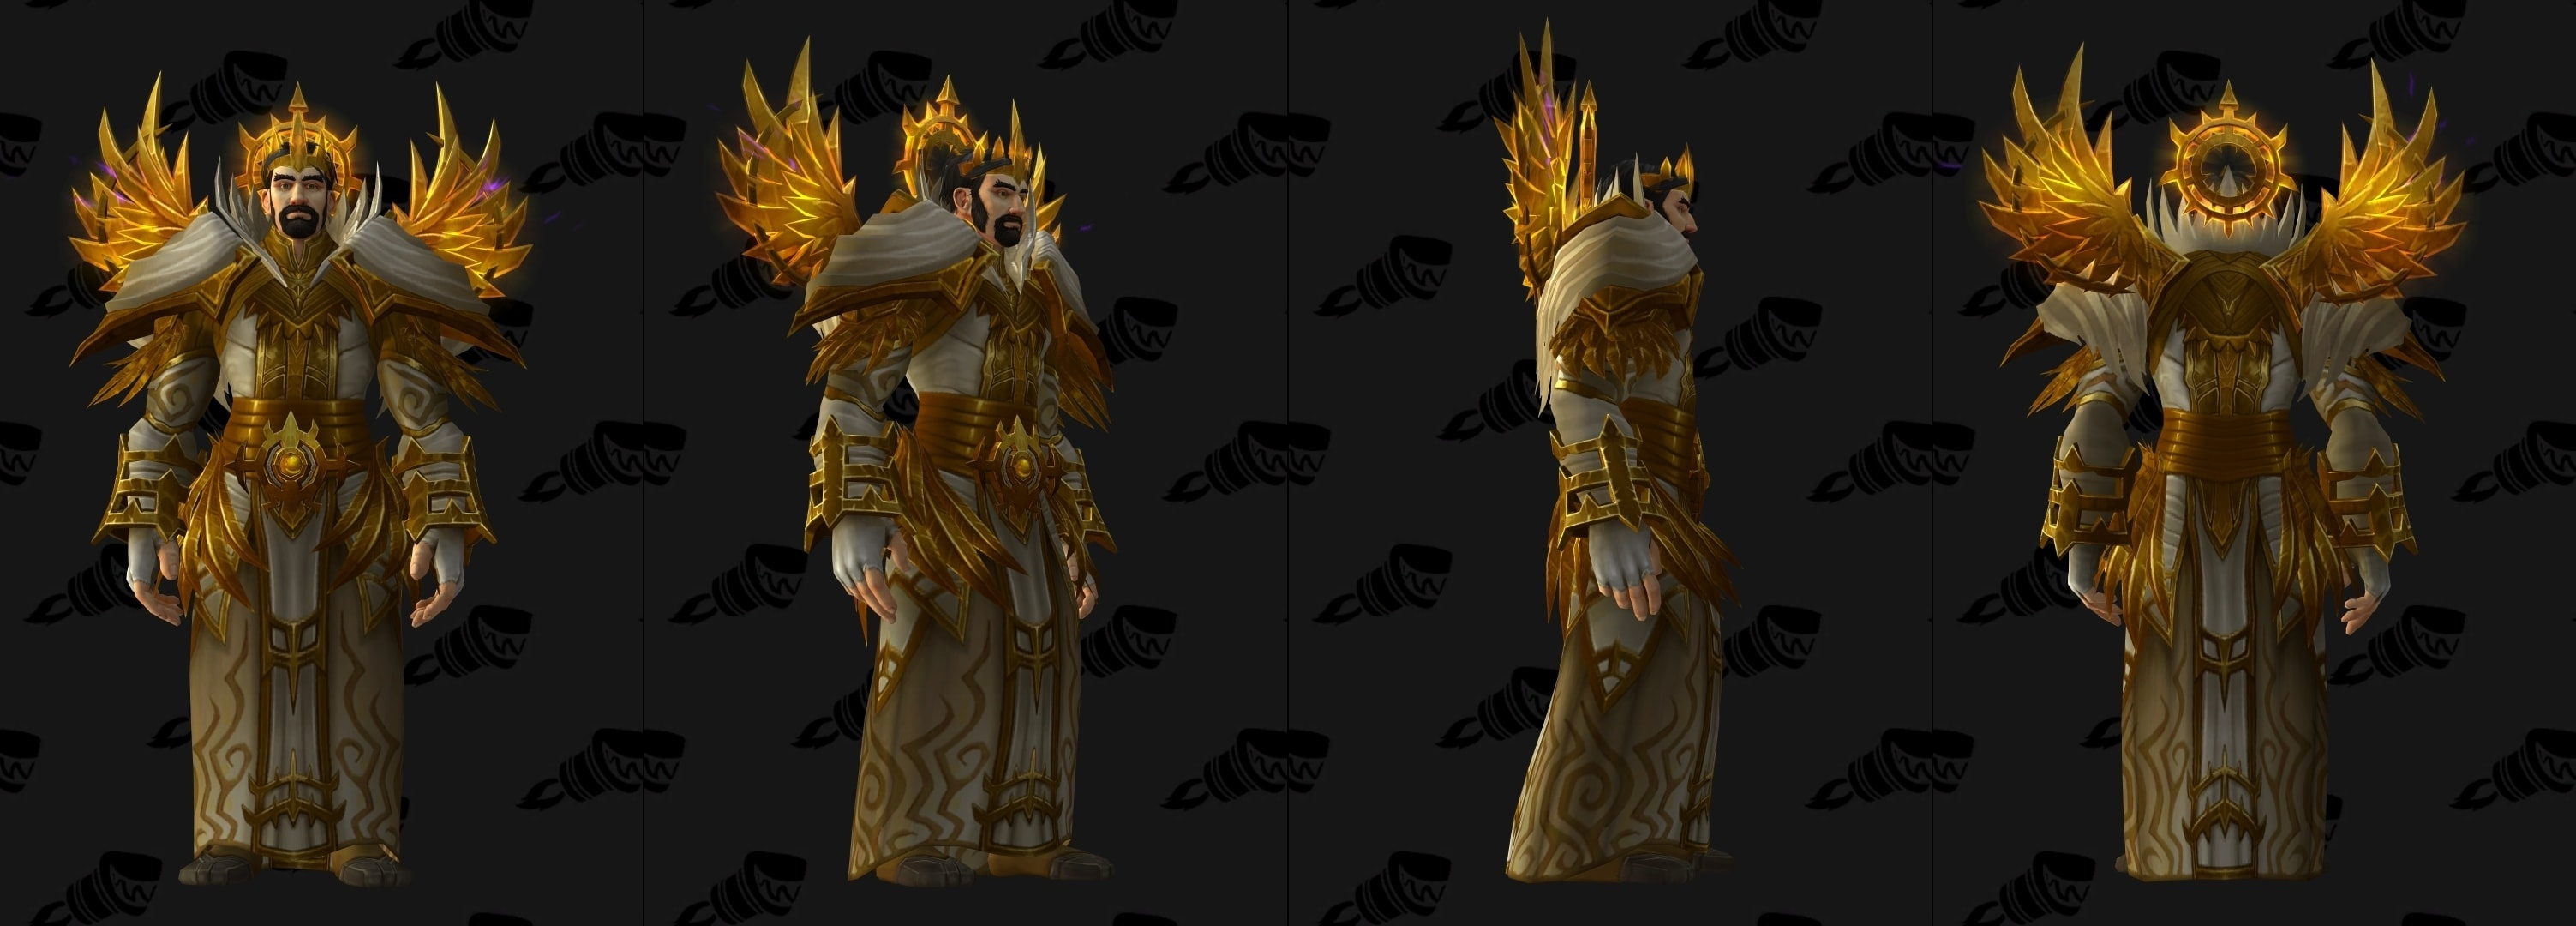 Tier 21 Armor Sets  Guides  Wowhead